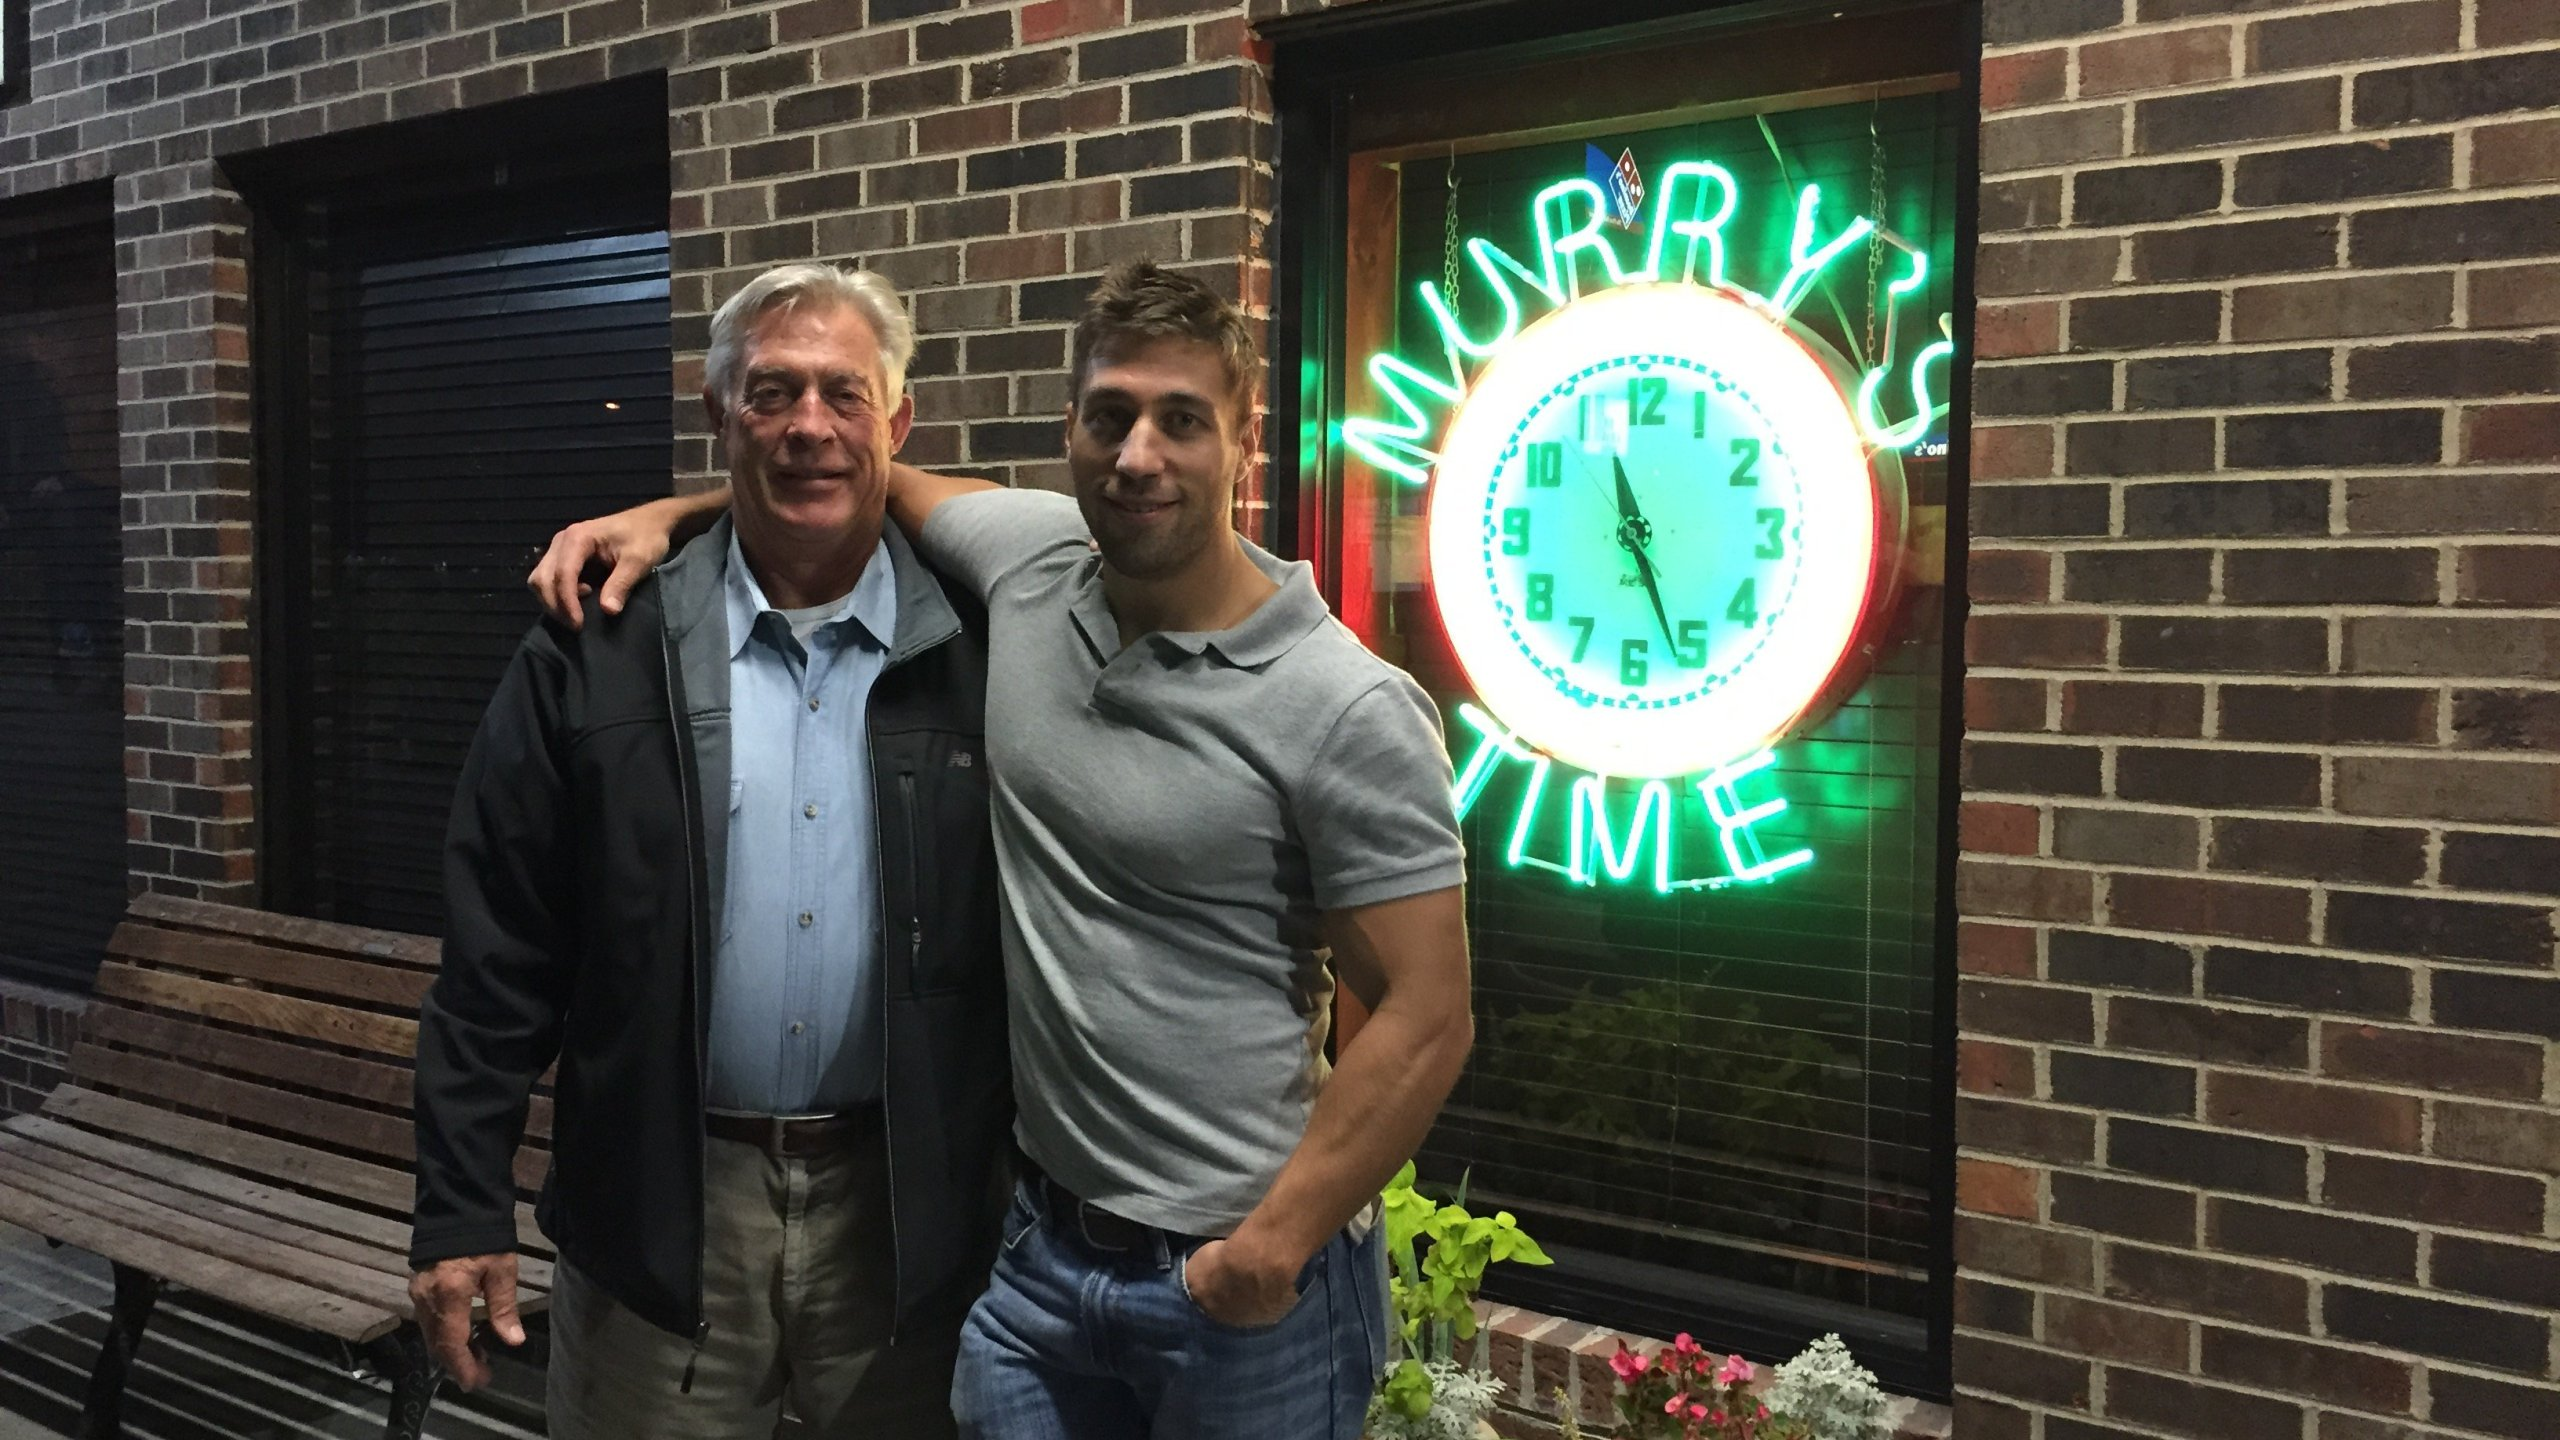 Ryan Ferguson and his father celebrate the one-year anniversary of Ryan's release on November 12, 2014.